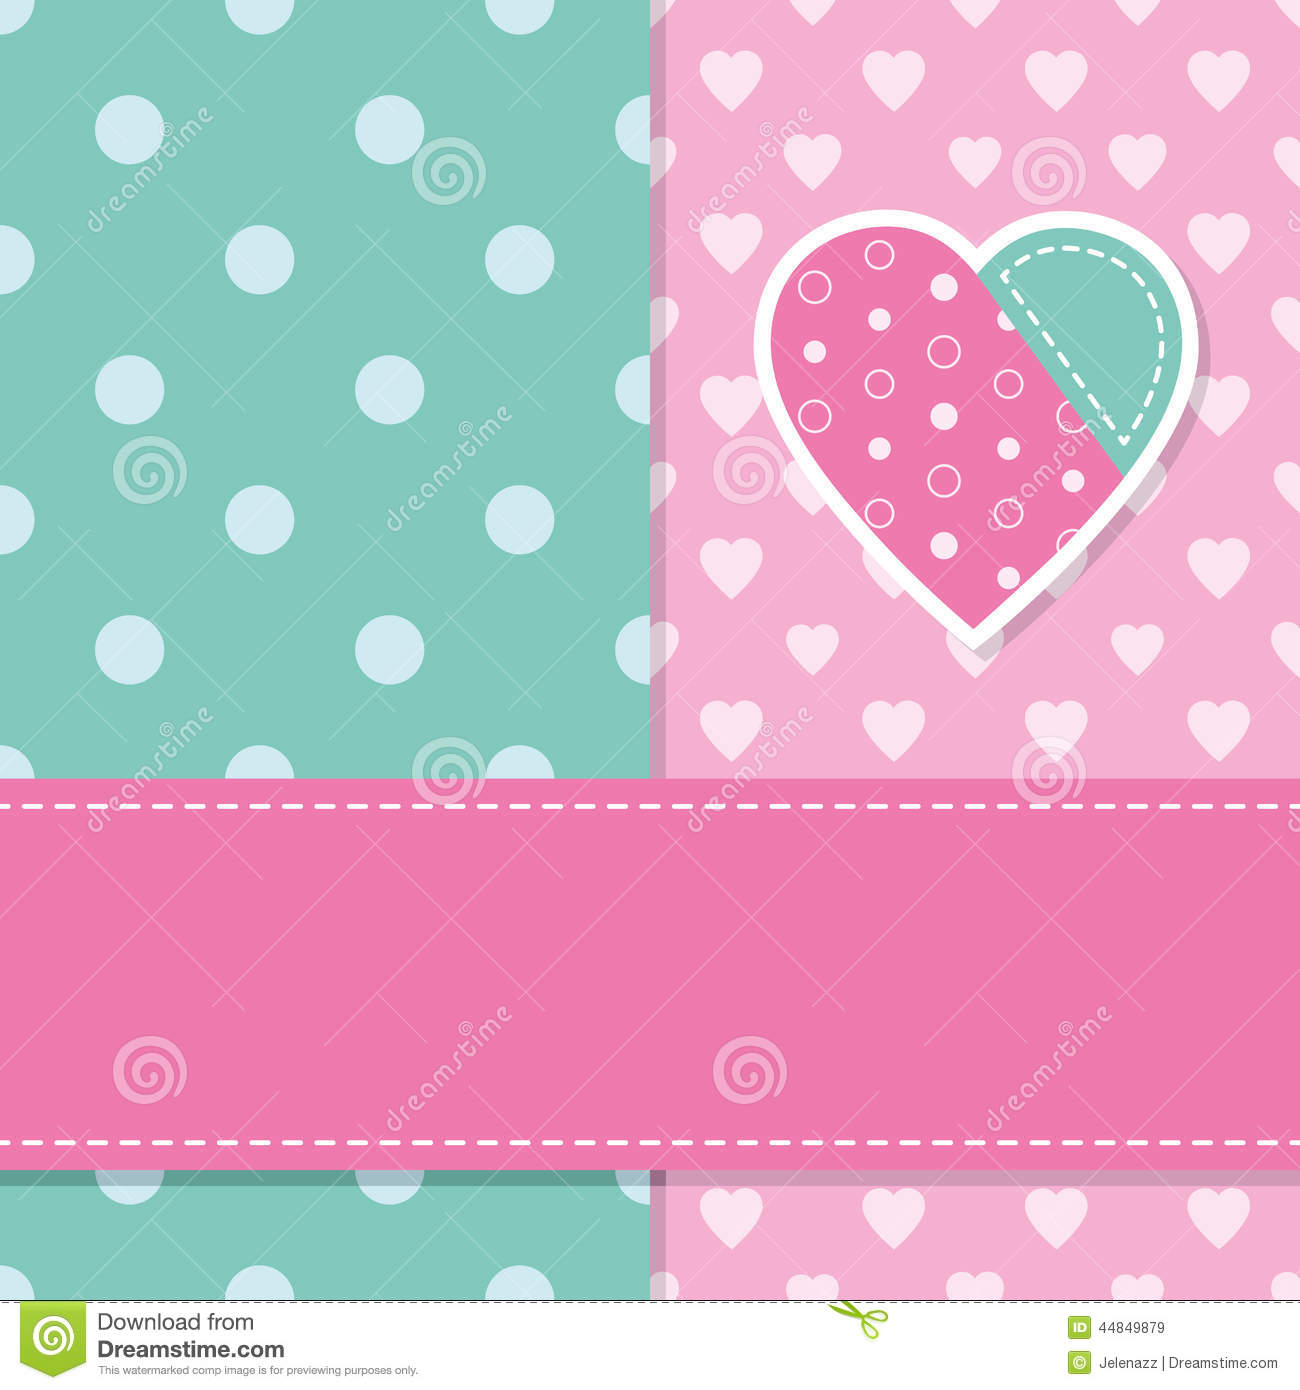 Cocoppa Wallpapers Girl Cute Baby Girl Greeting Card Stock Vector Image 44849879